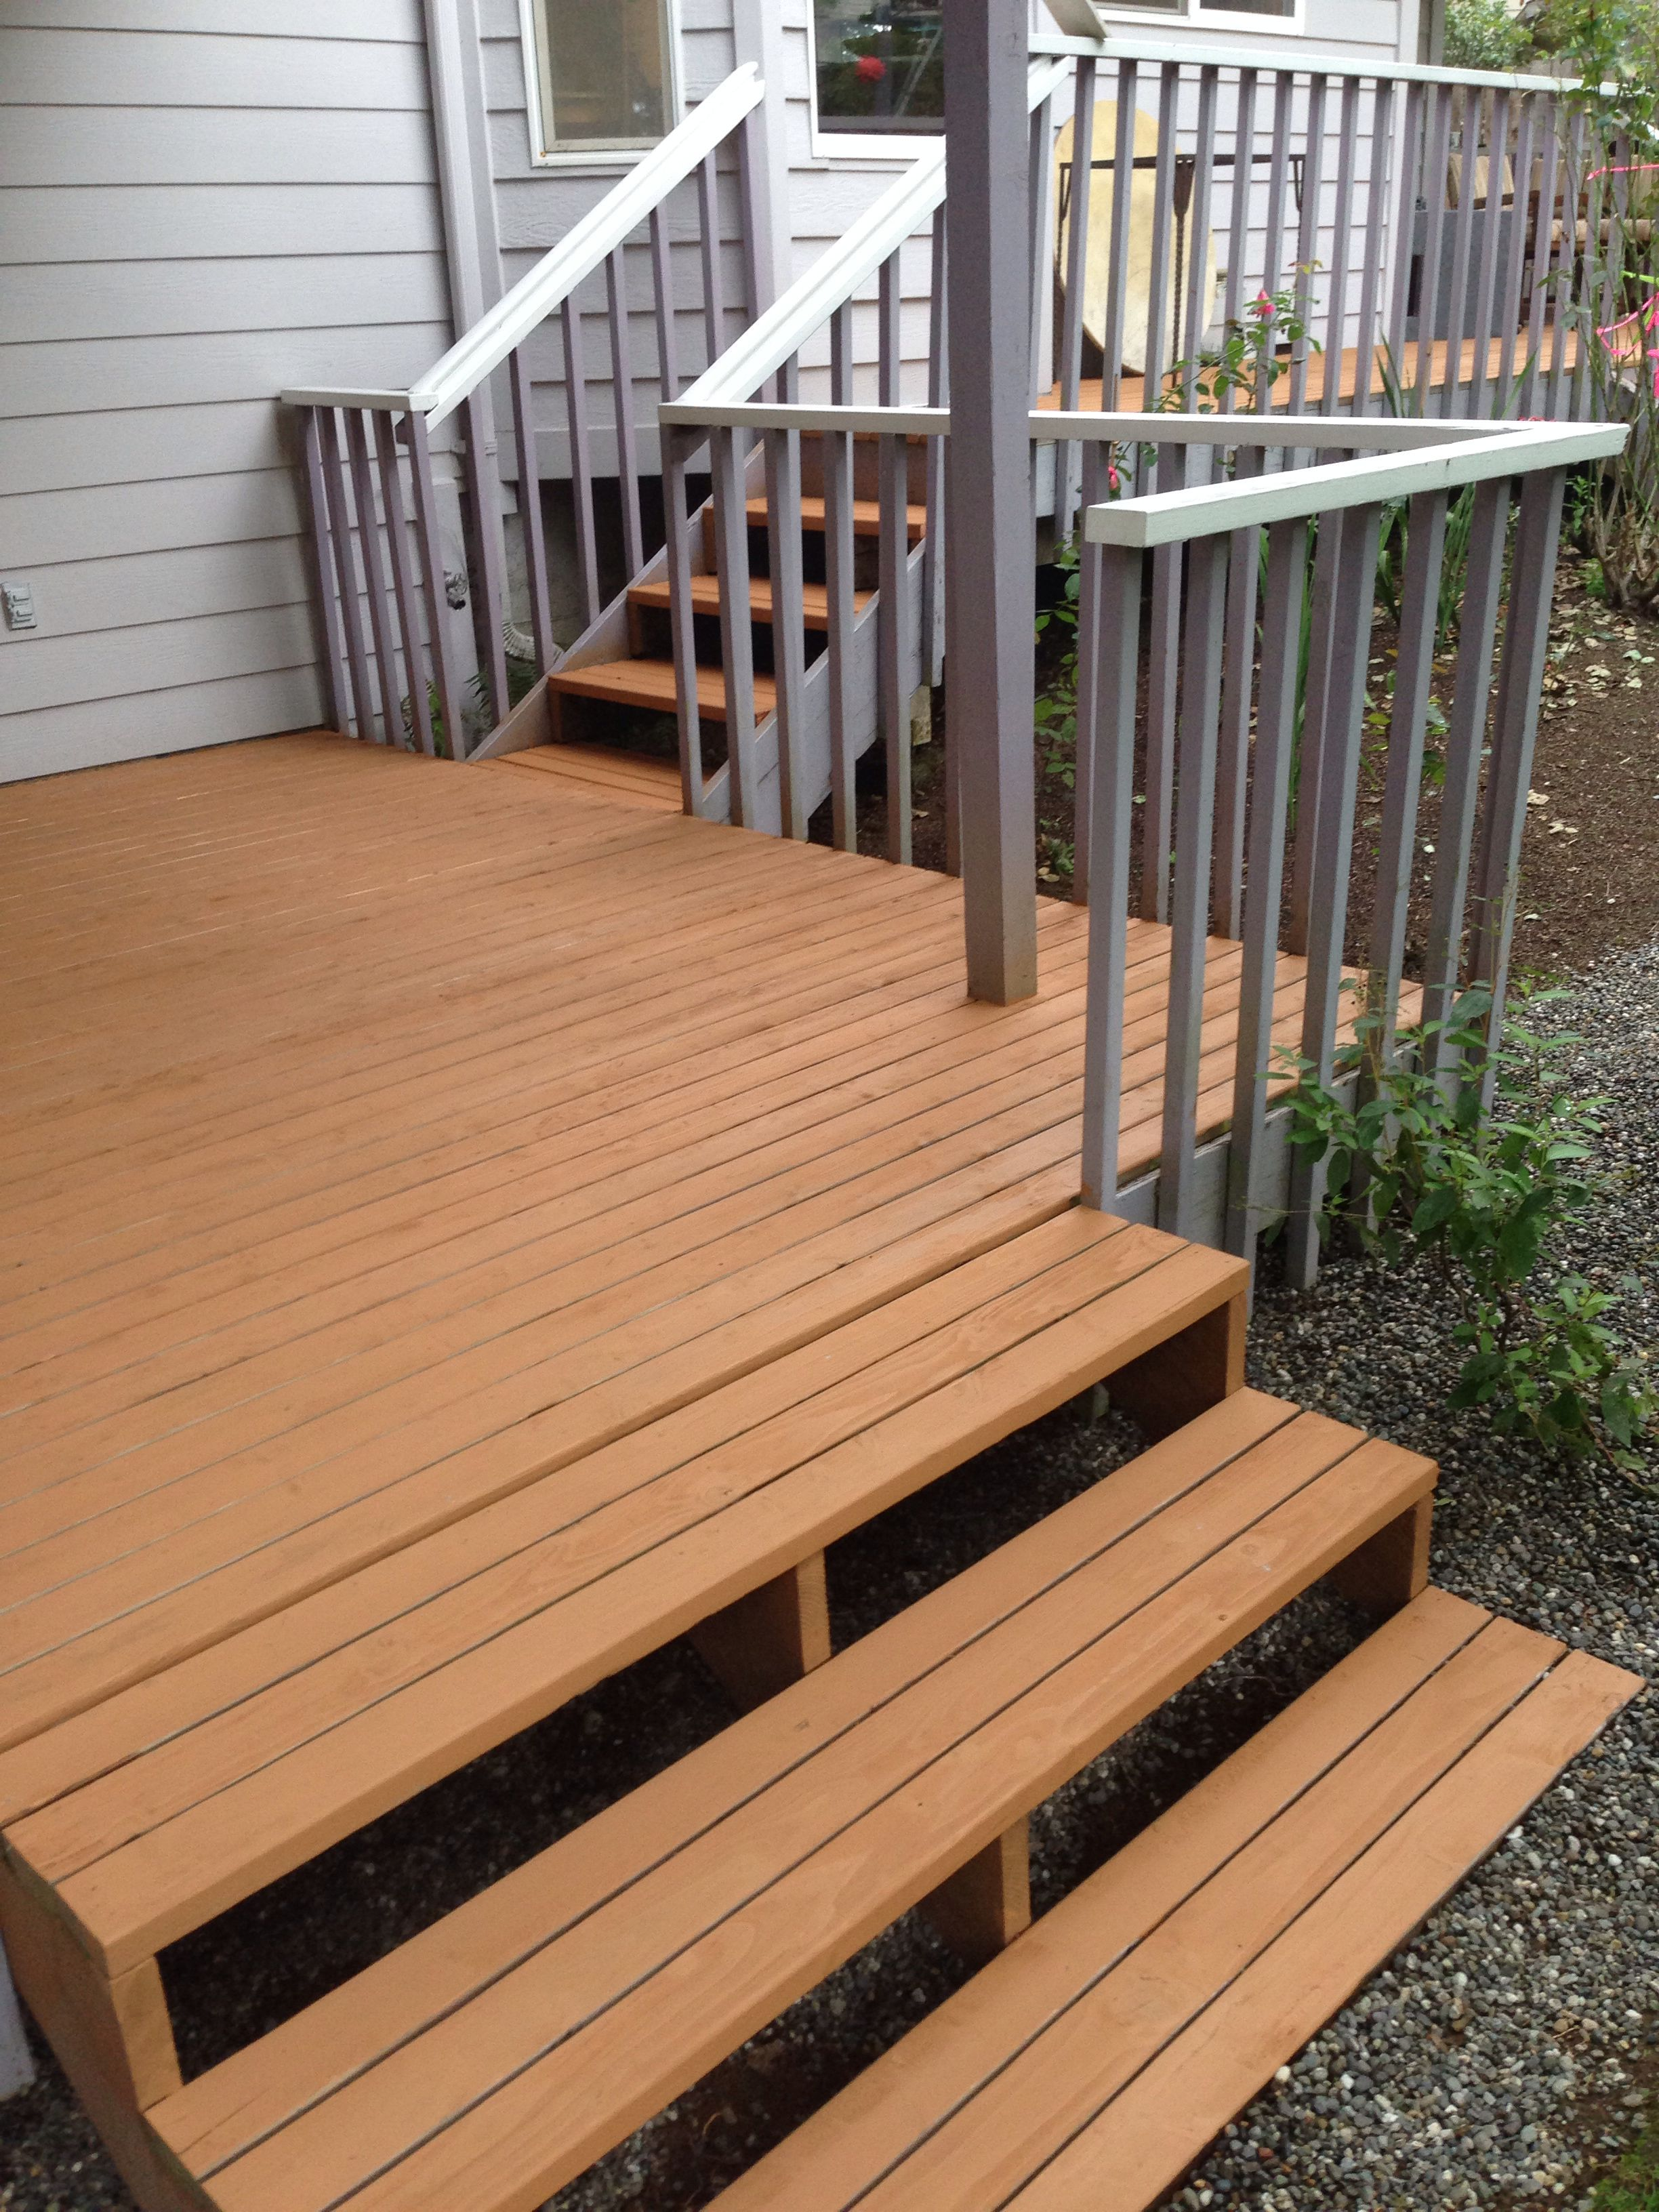 Rob Stained The Deck Using Olympic Max Stain In Cedar Outdoor Living Pint